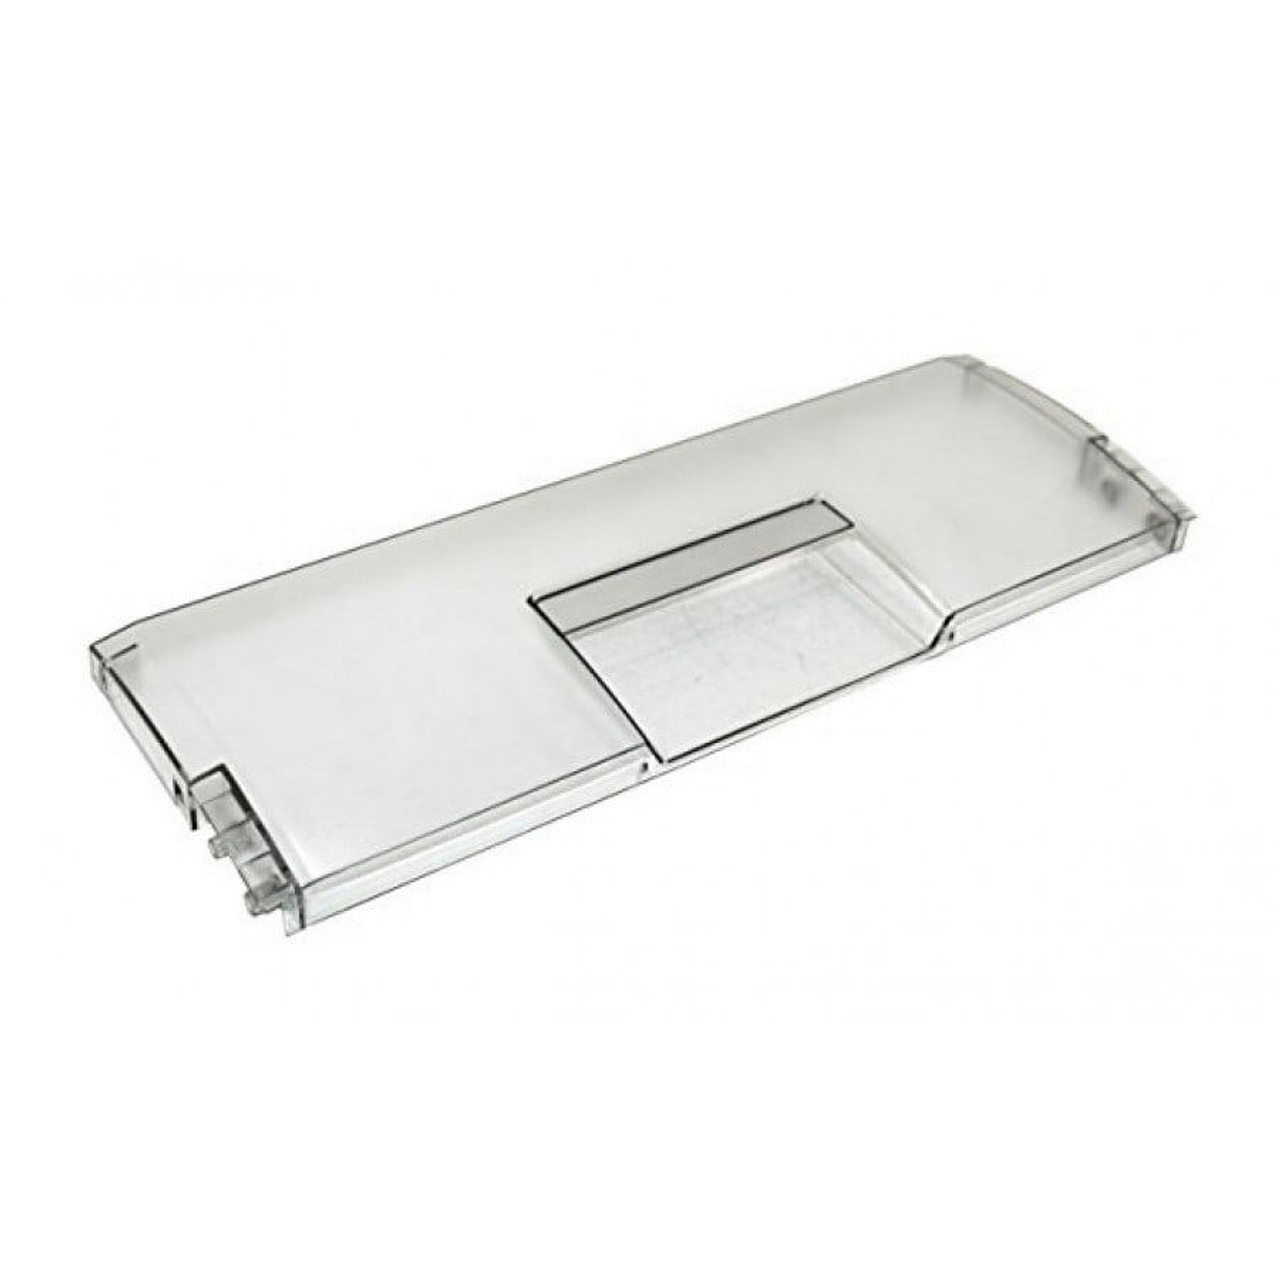 Beko Freezer Fast Freeze Compartment Flap models listed on item page